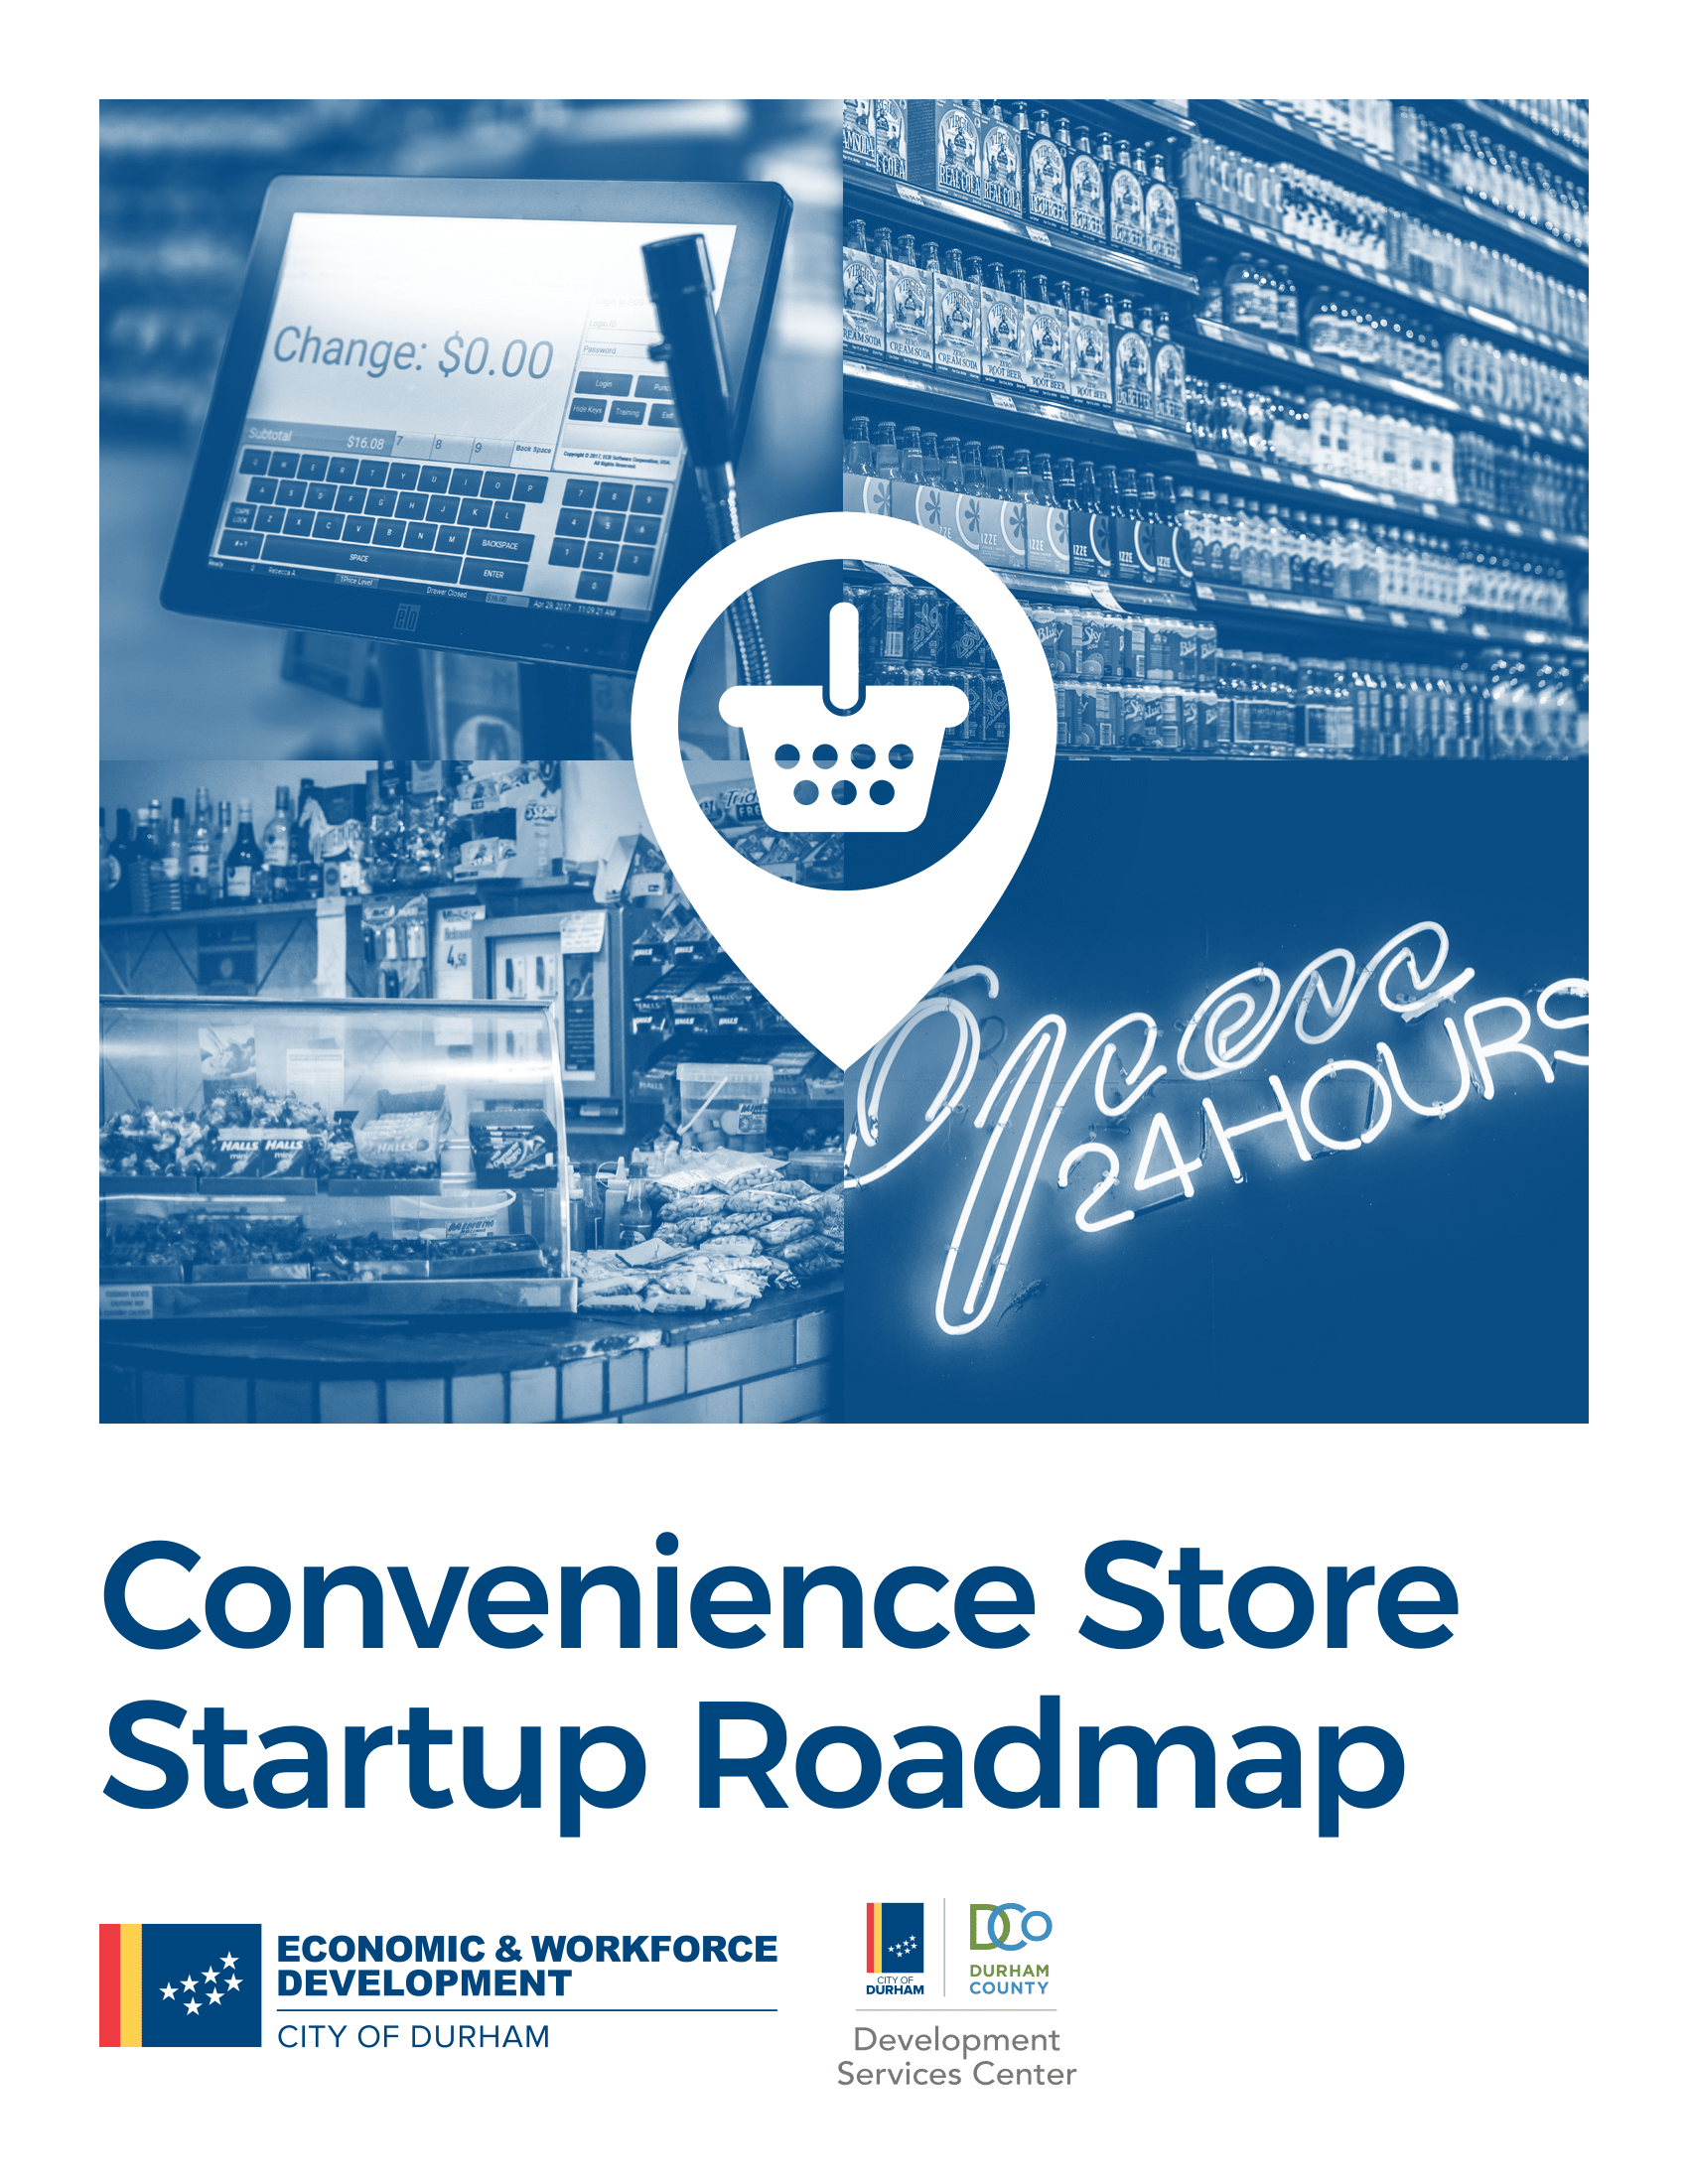 Convenience Store Startup Roadmap